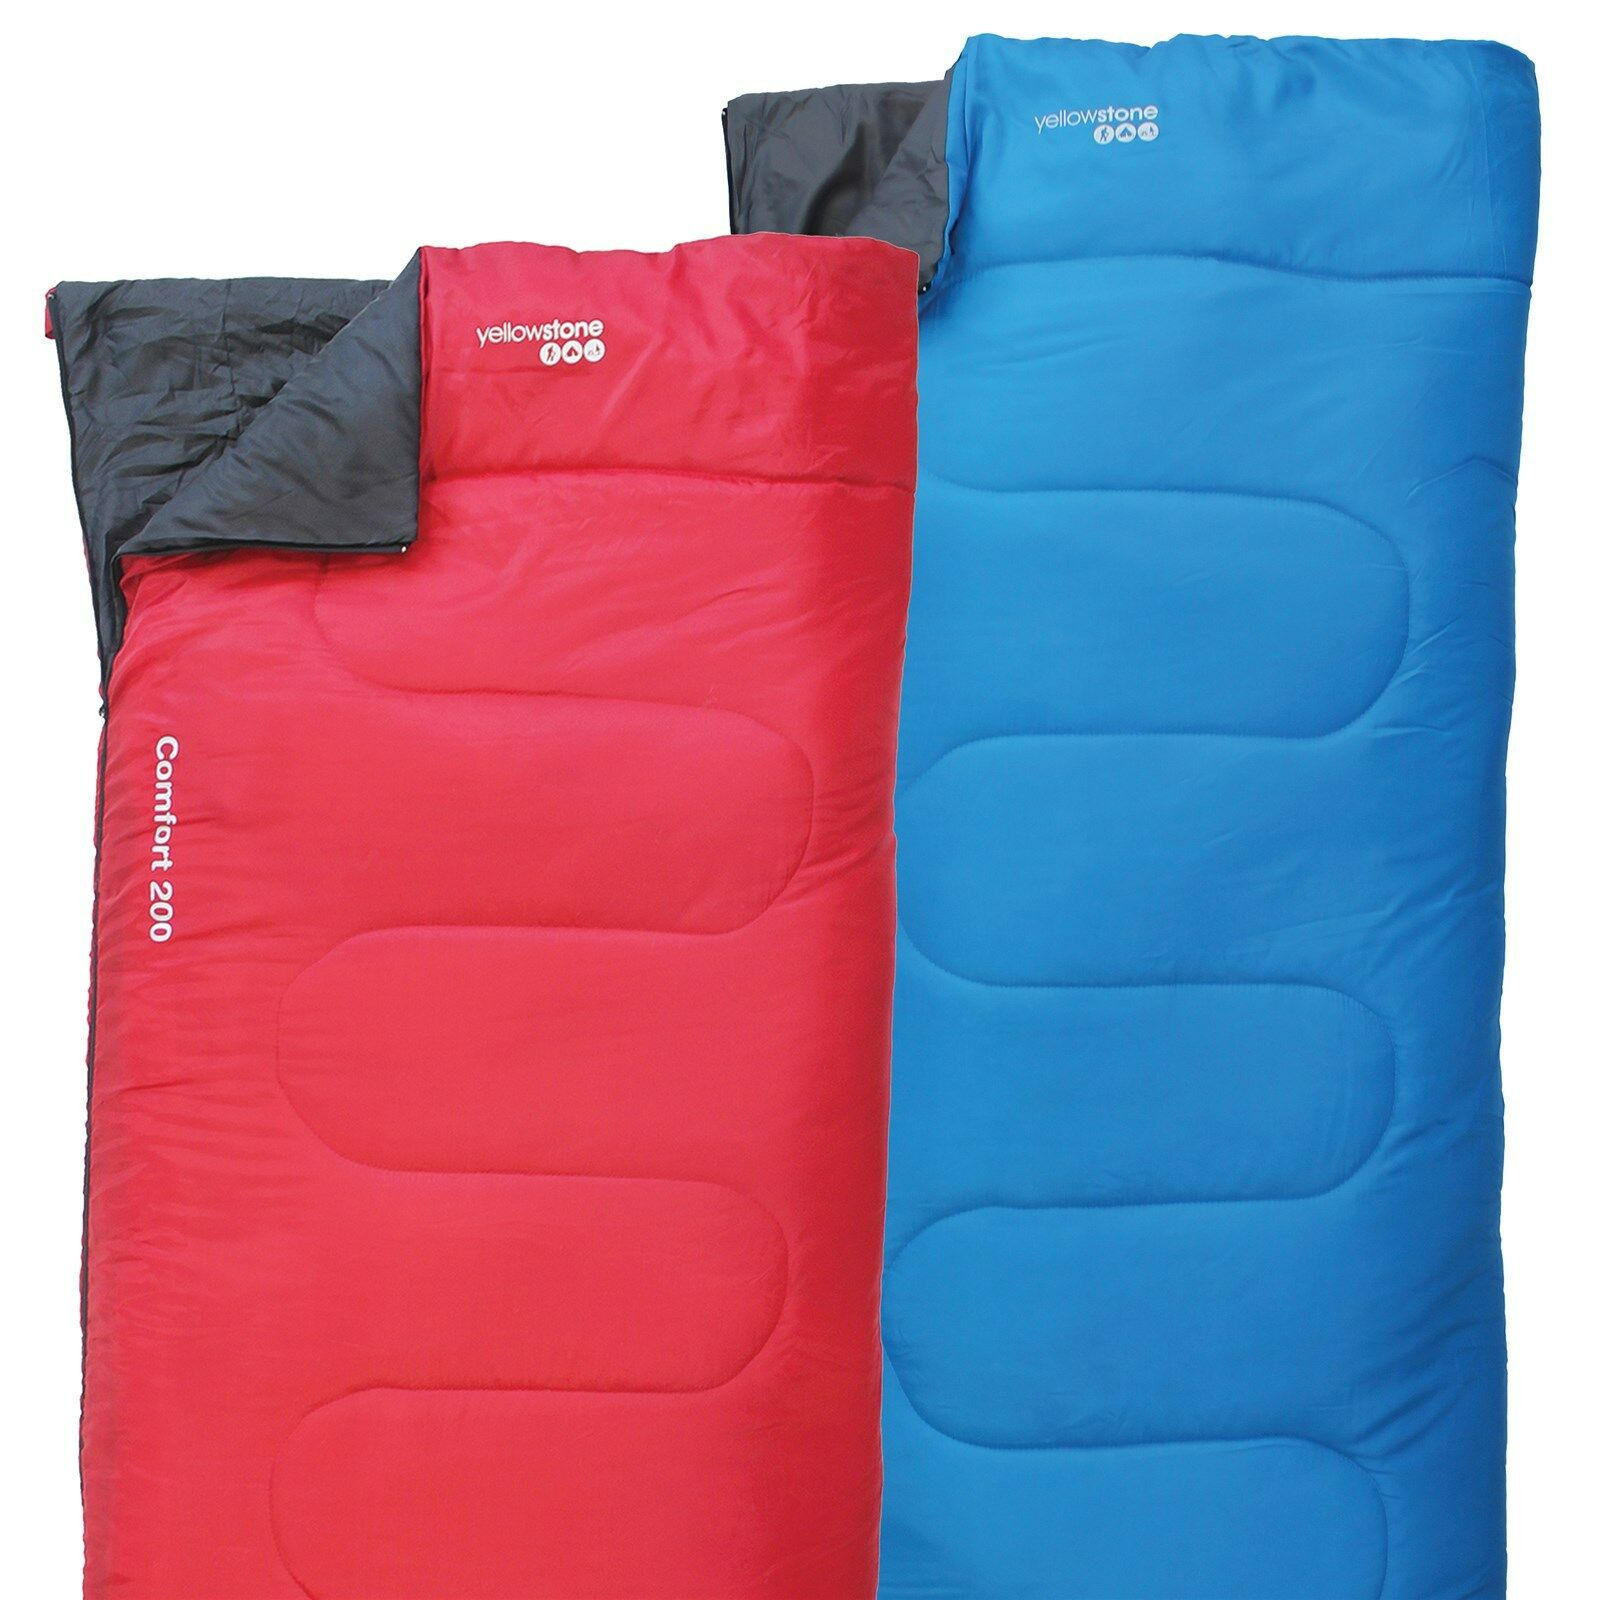 YELLOWSTONE SLEEPING BAG COMFORT 200 LIGHTWEIGHT ADULT ...